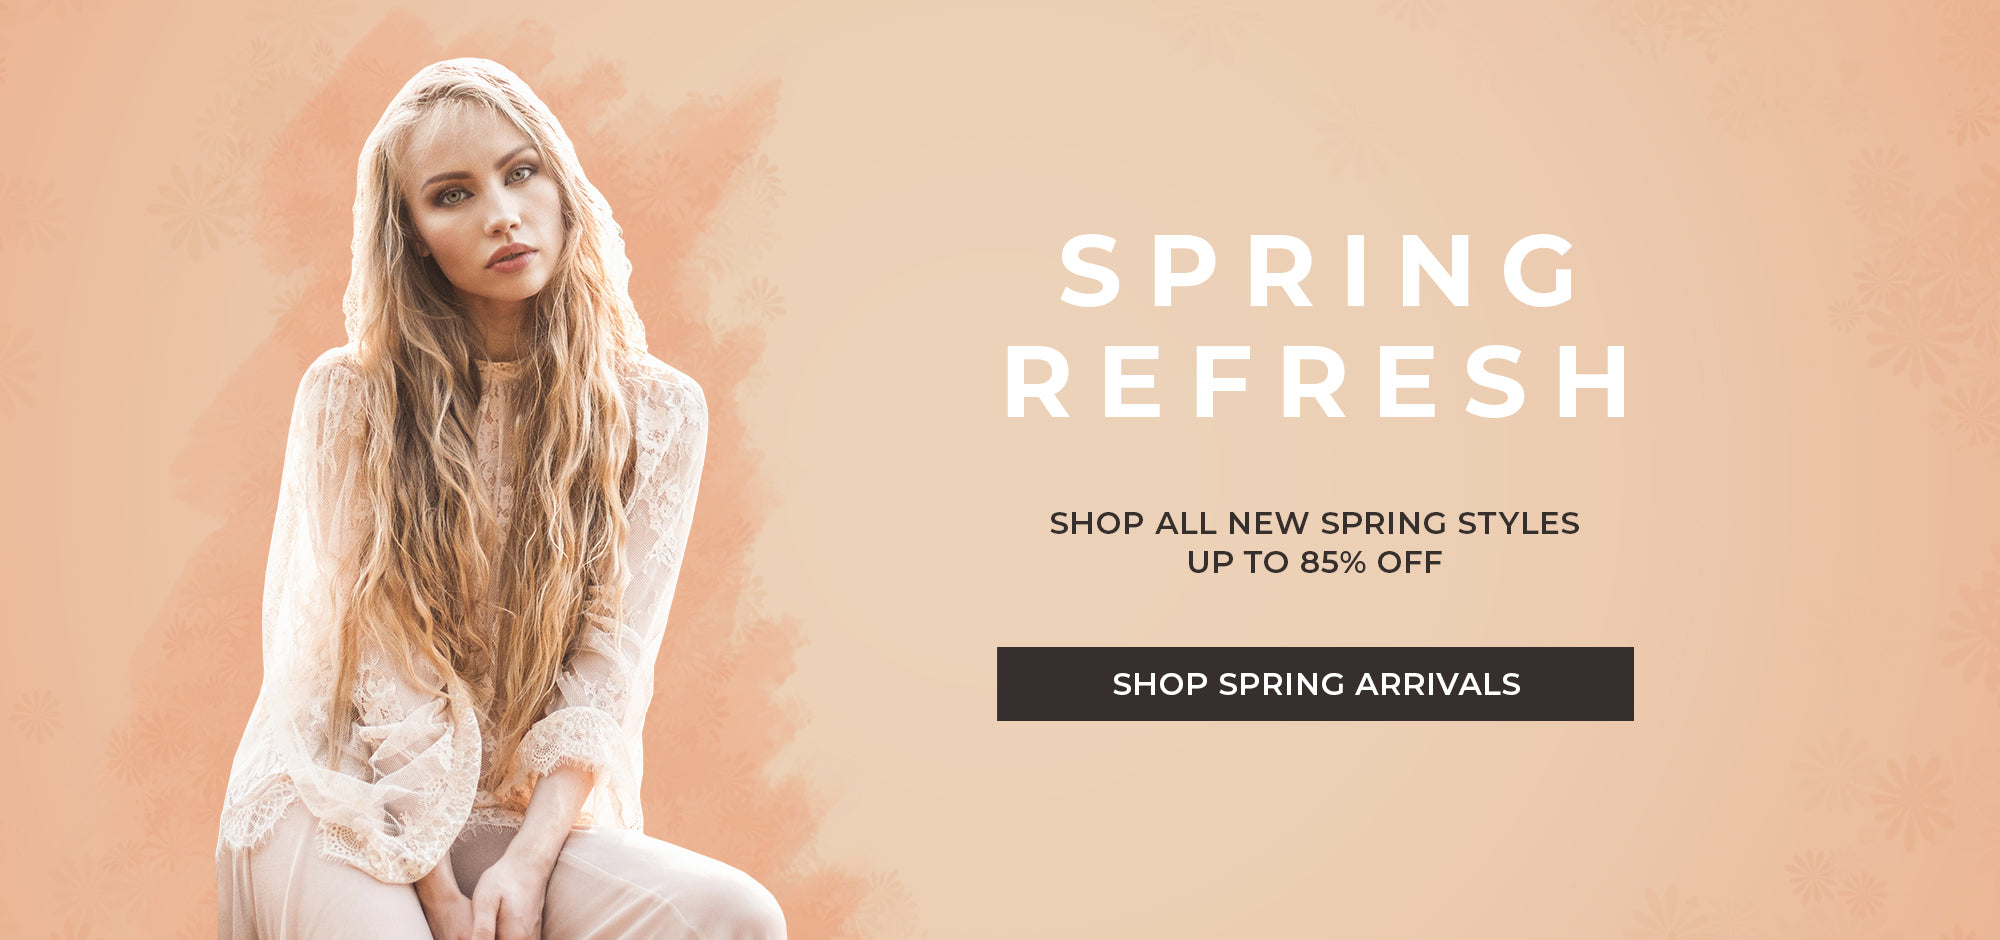 New Spring Arrivals